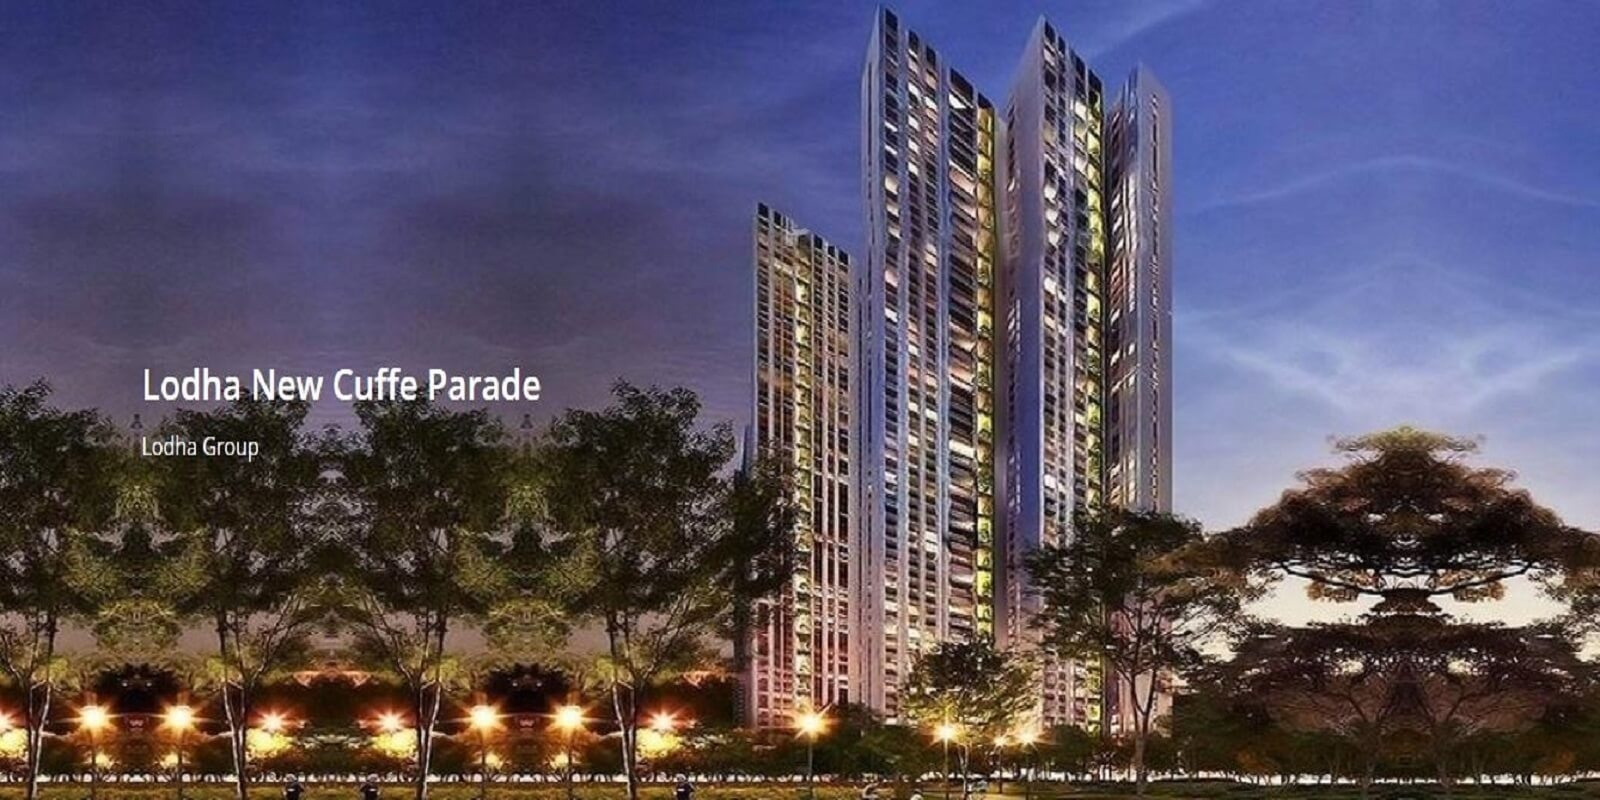 lodha estrella project project large image1